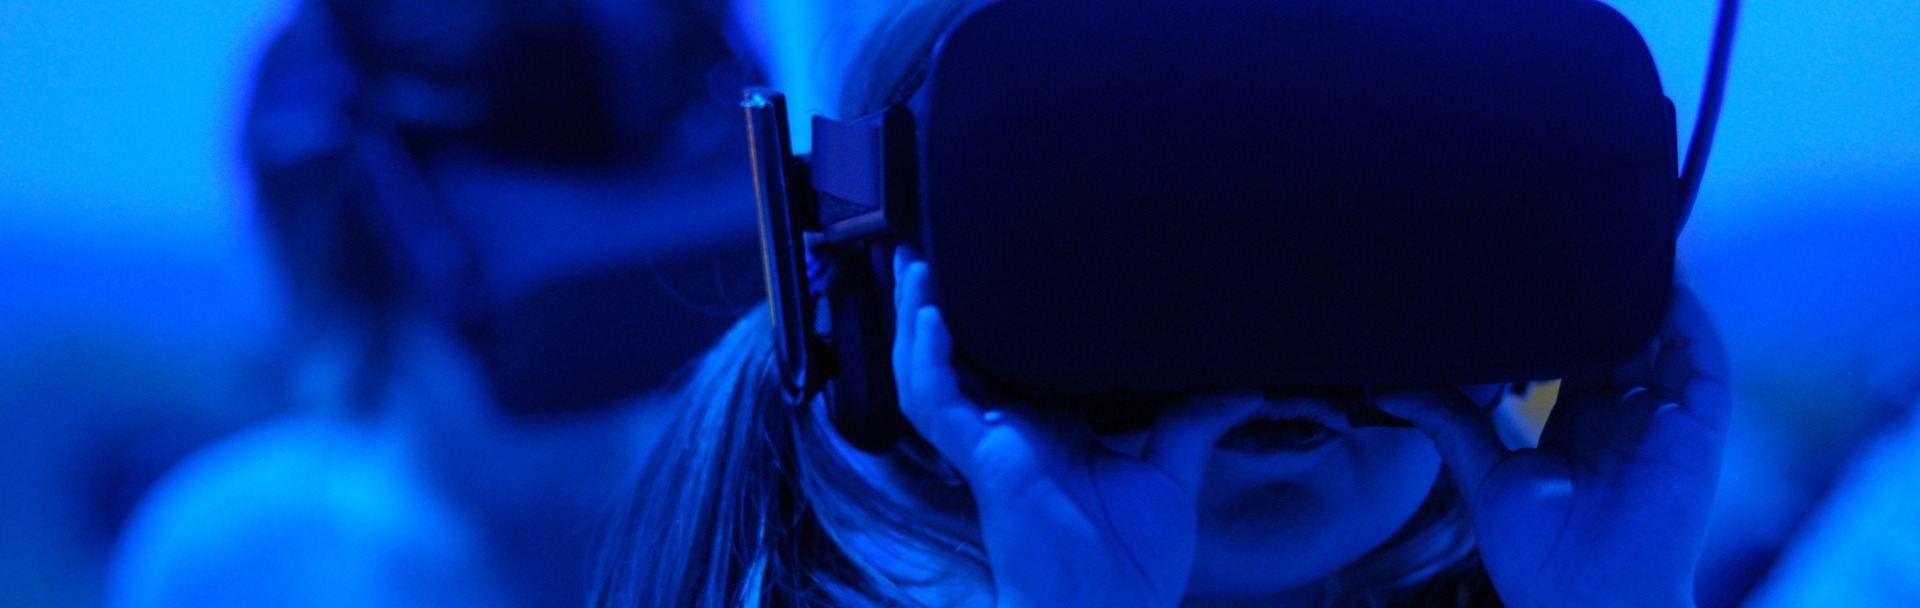 Immersive Technologies in Between Enriching and Fixing Reality